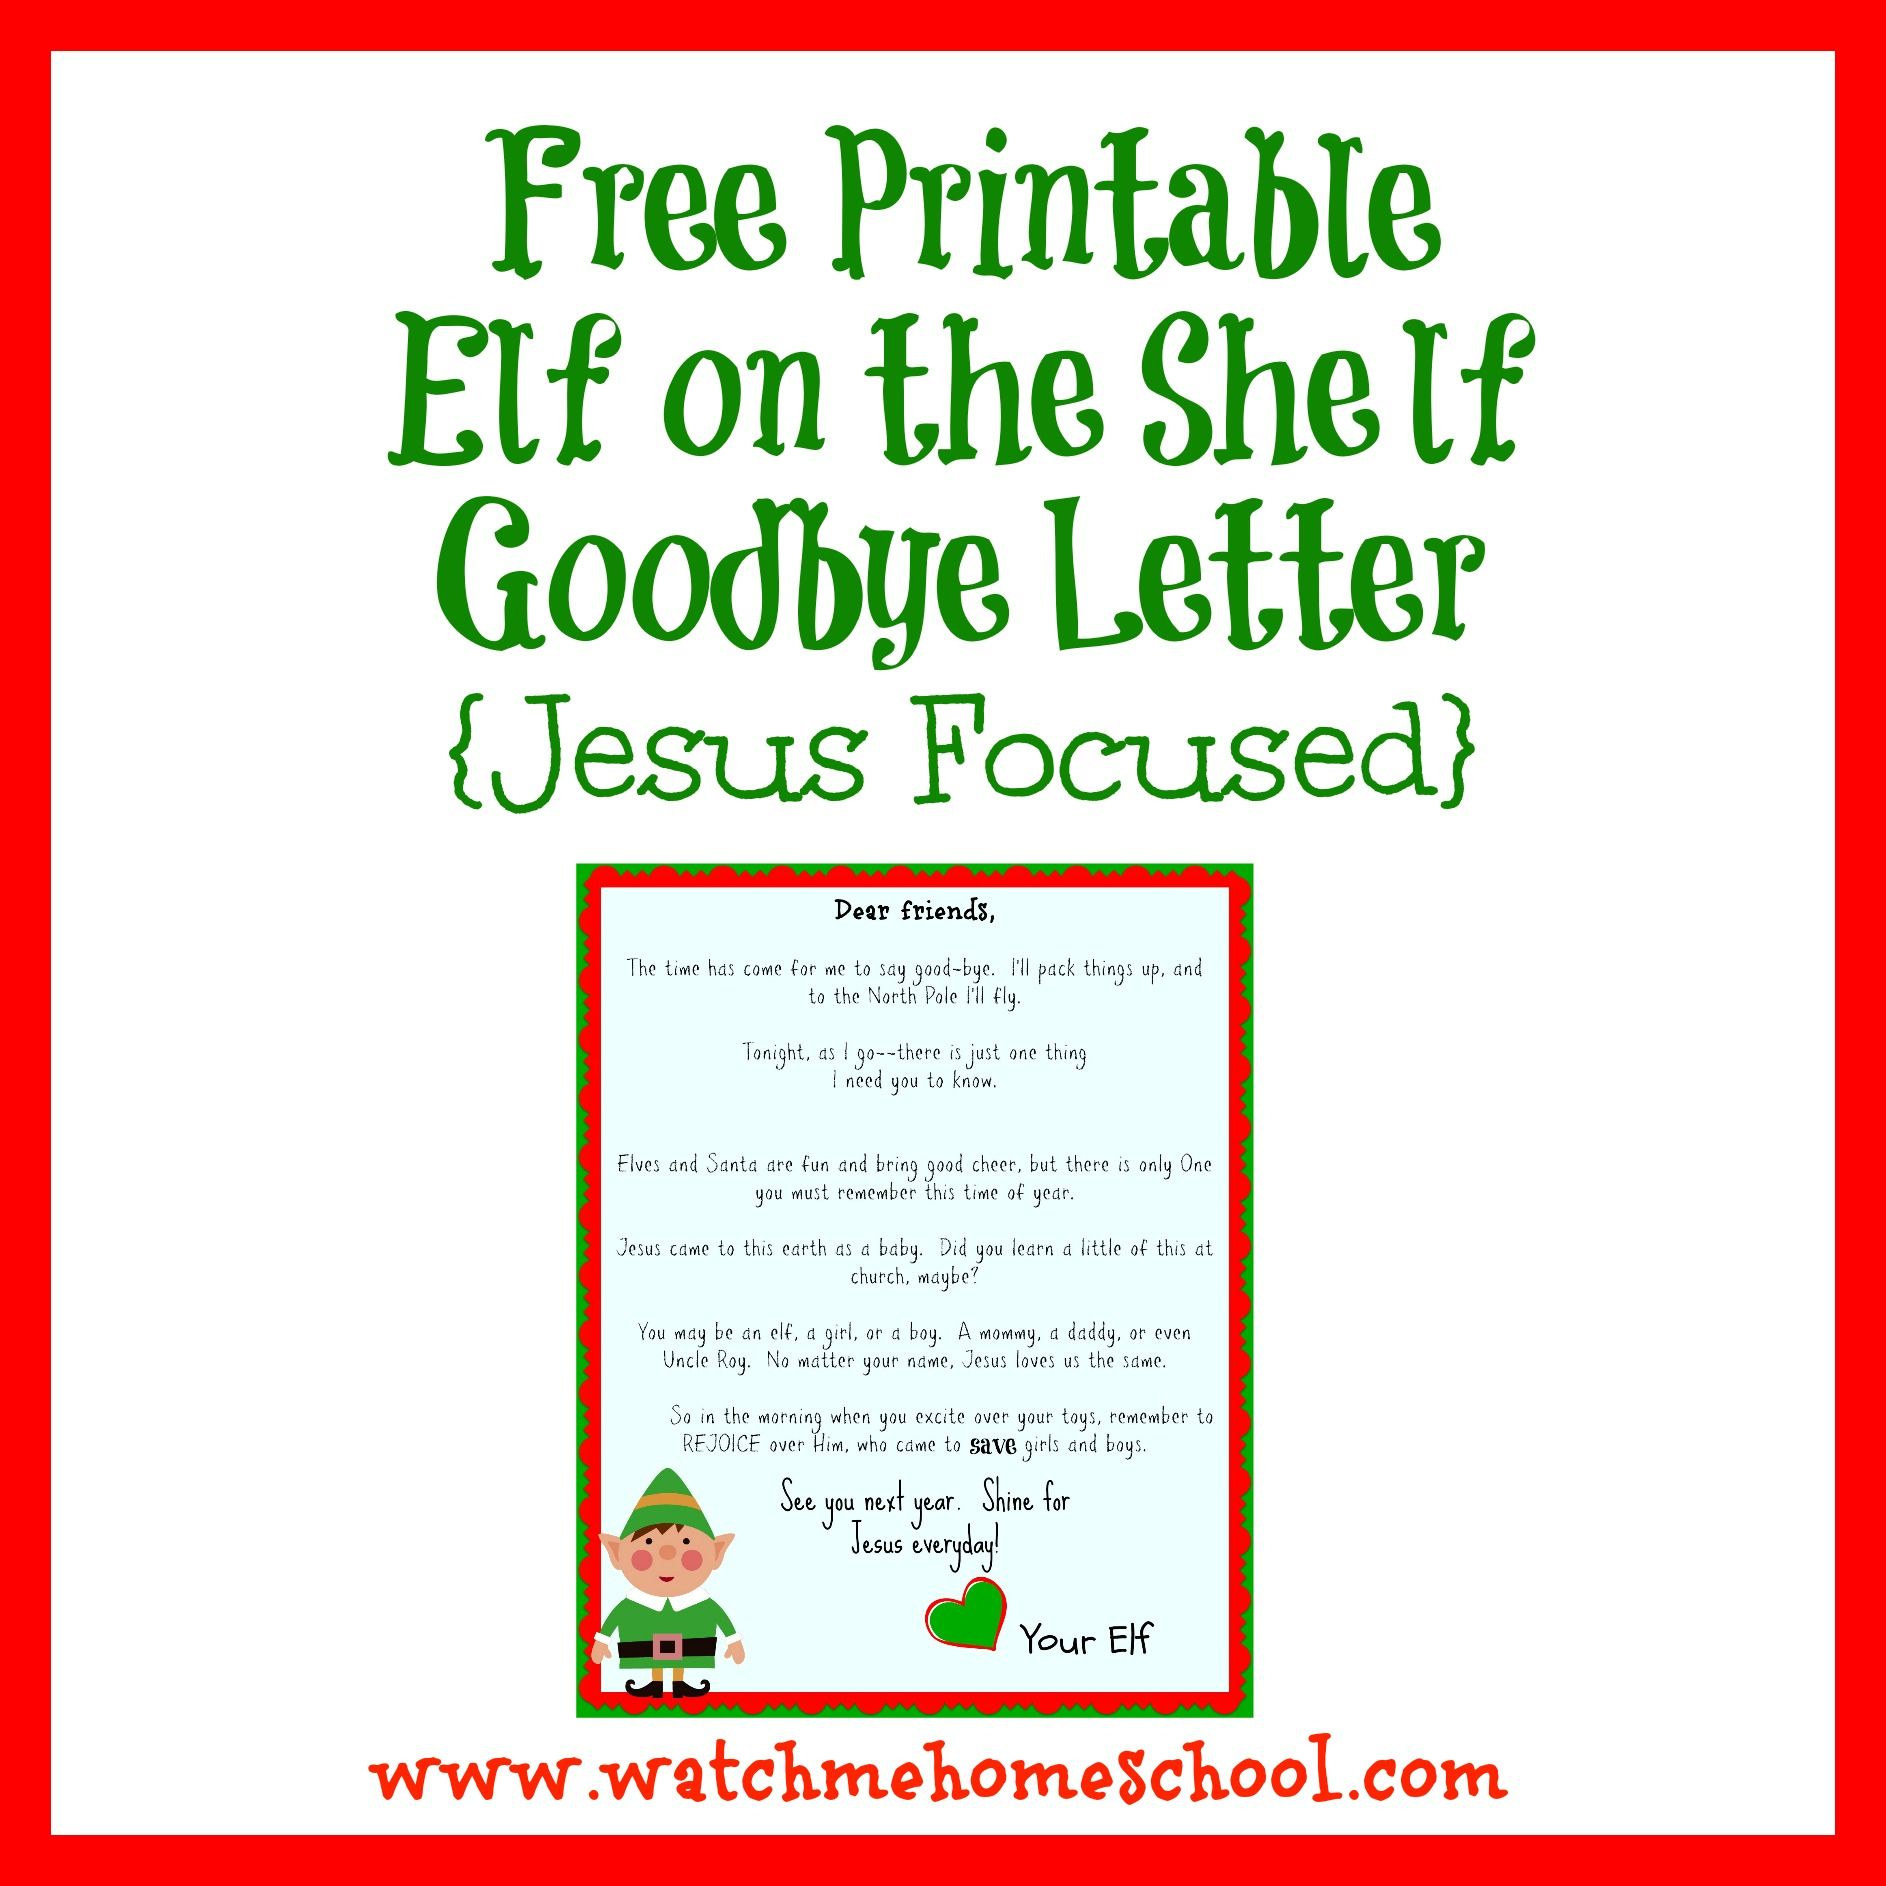 Free Printable Elf on the Shelf Goodbye Letter Elf